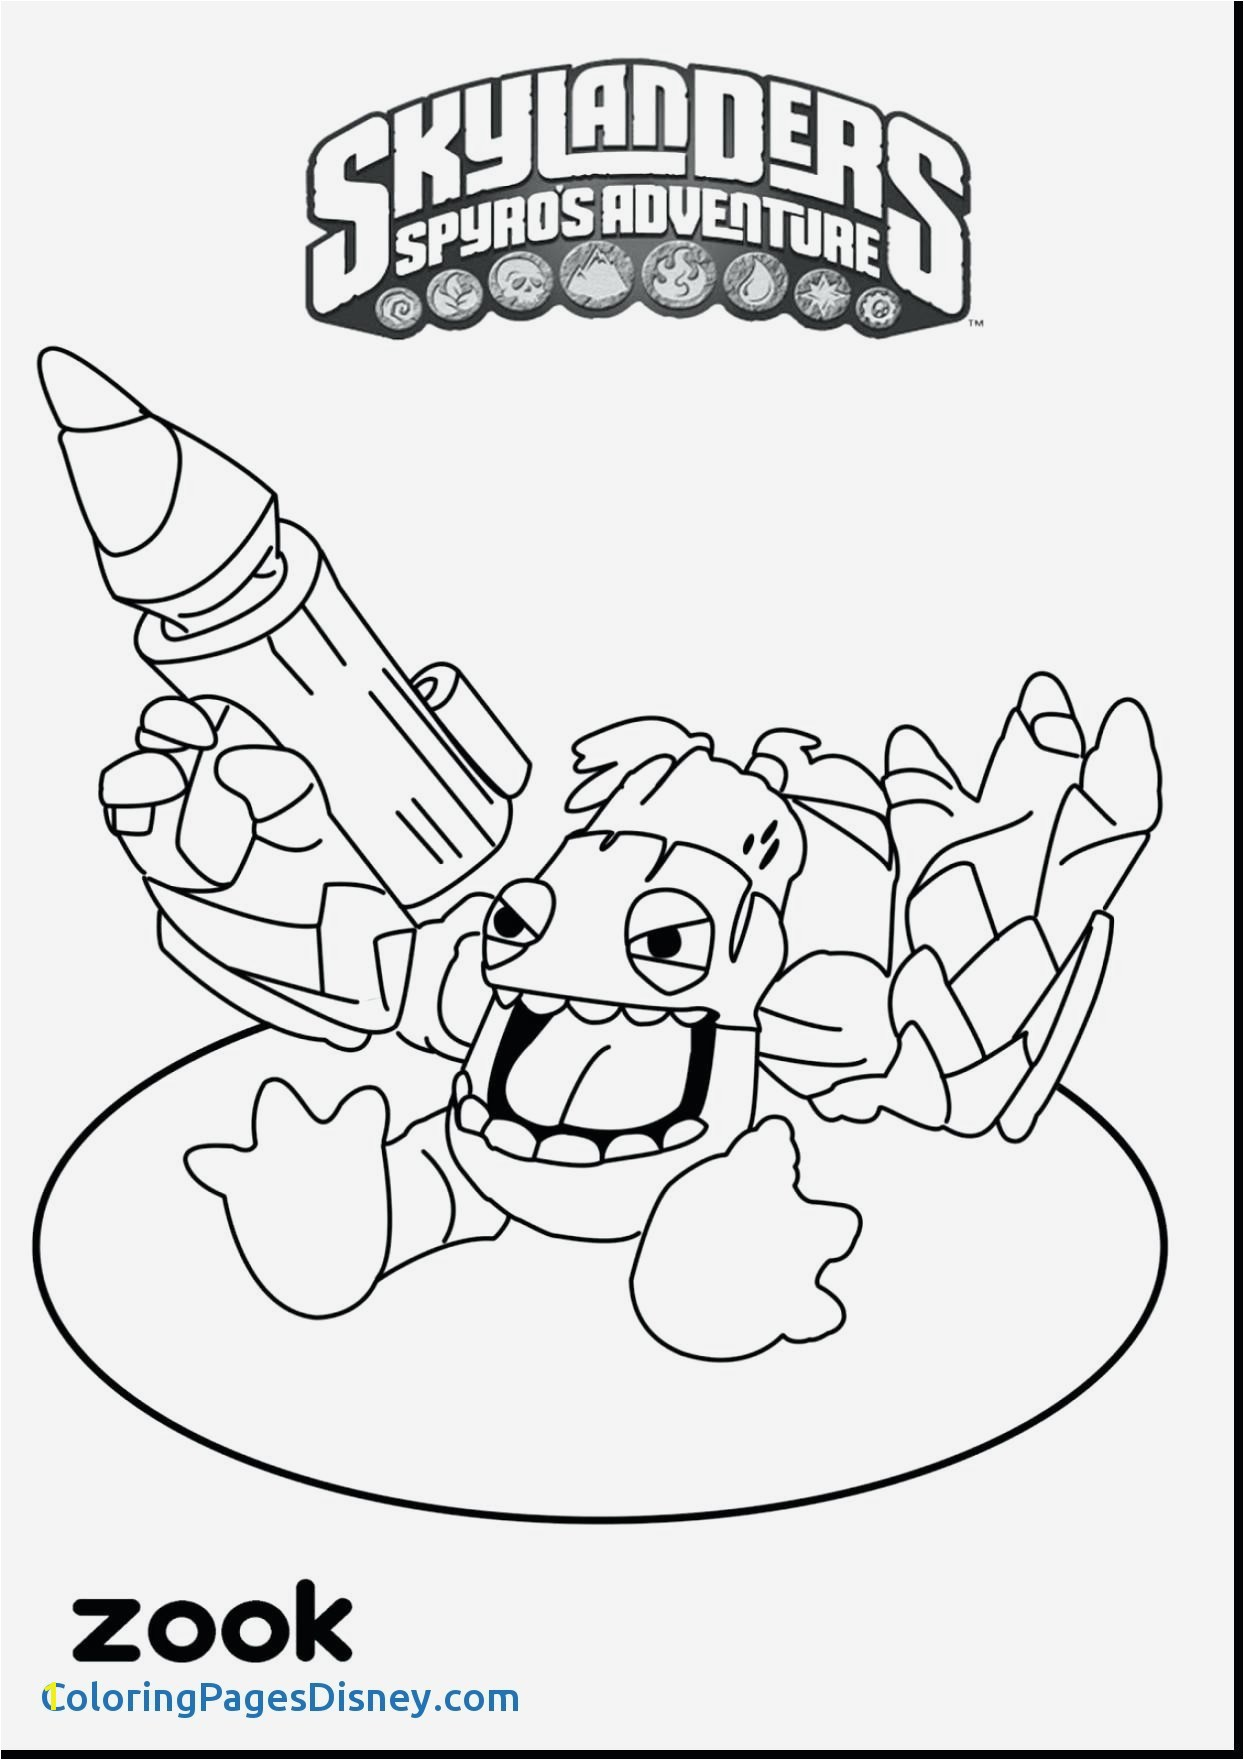 Lego Printable Coloring Pages Beautiful Printable Coloring Pages for Girls Lovely Printable Cds 0d – Fun